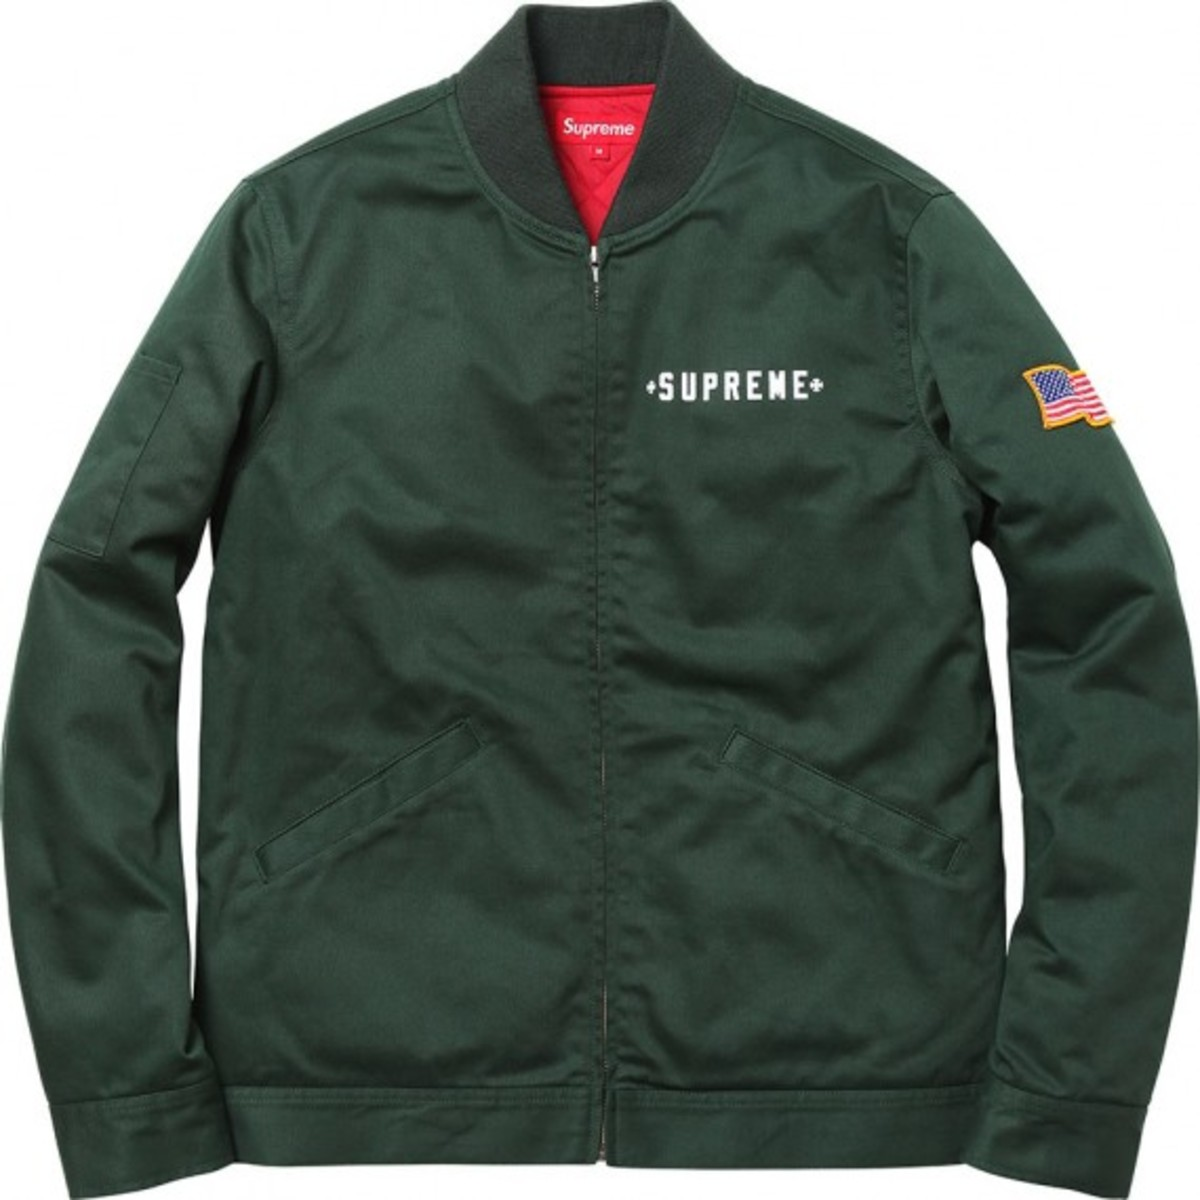 5-supreme--s--independent--r--_jacket-zoom_1345455036